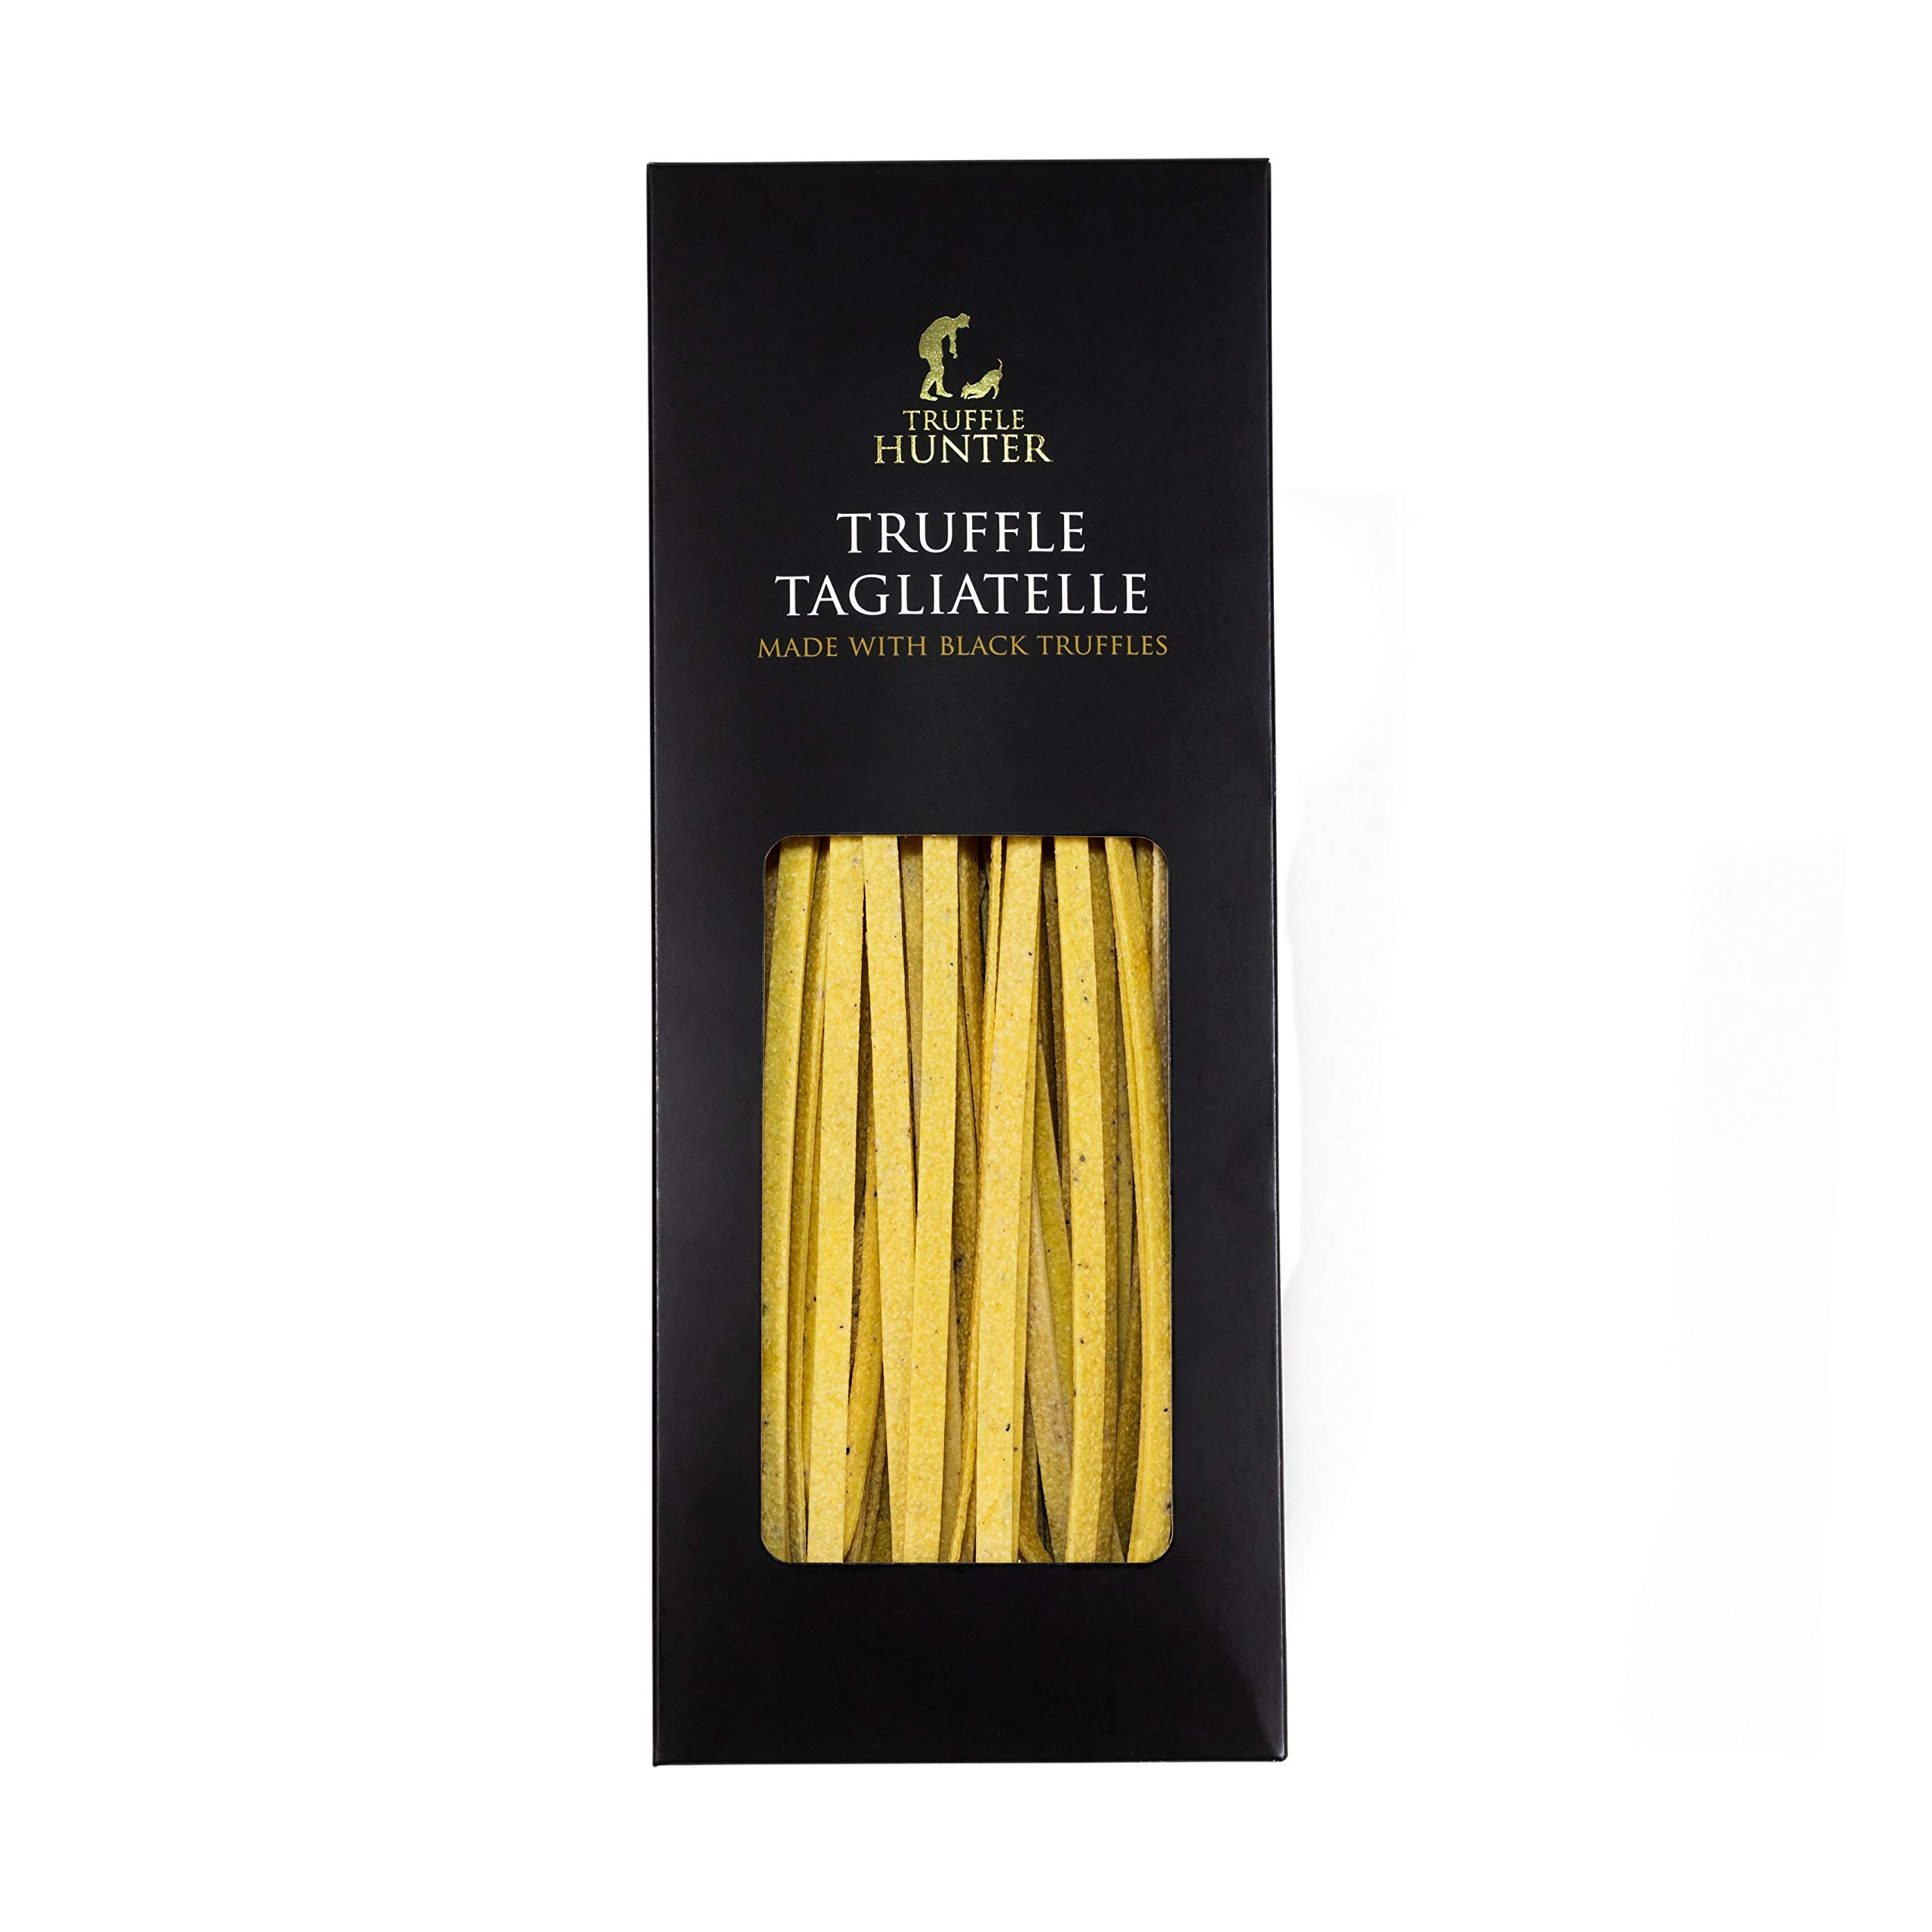 Black Truffle Tagliatelle Pasta (250g) in a Gift Box by TruffleHunter - Made by an Expert Pasta Chef - Luxury